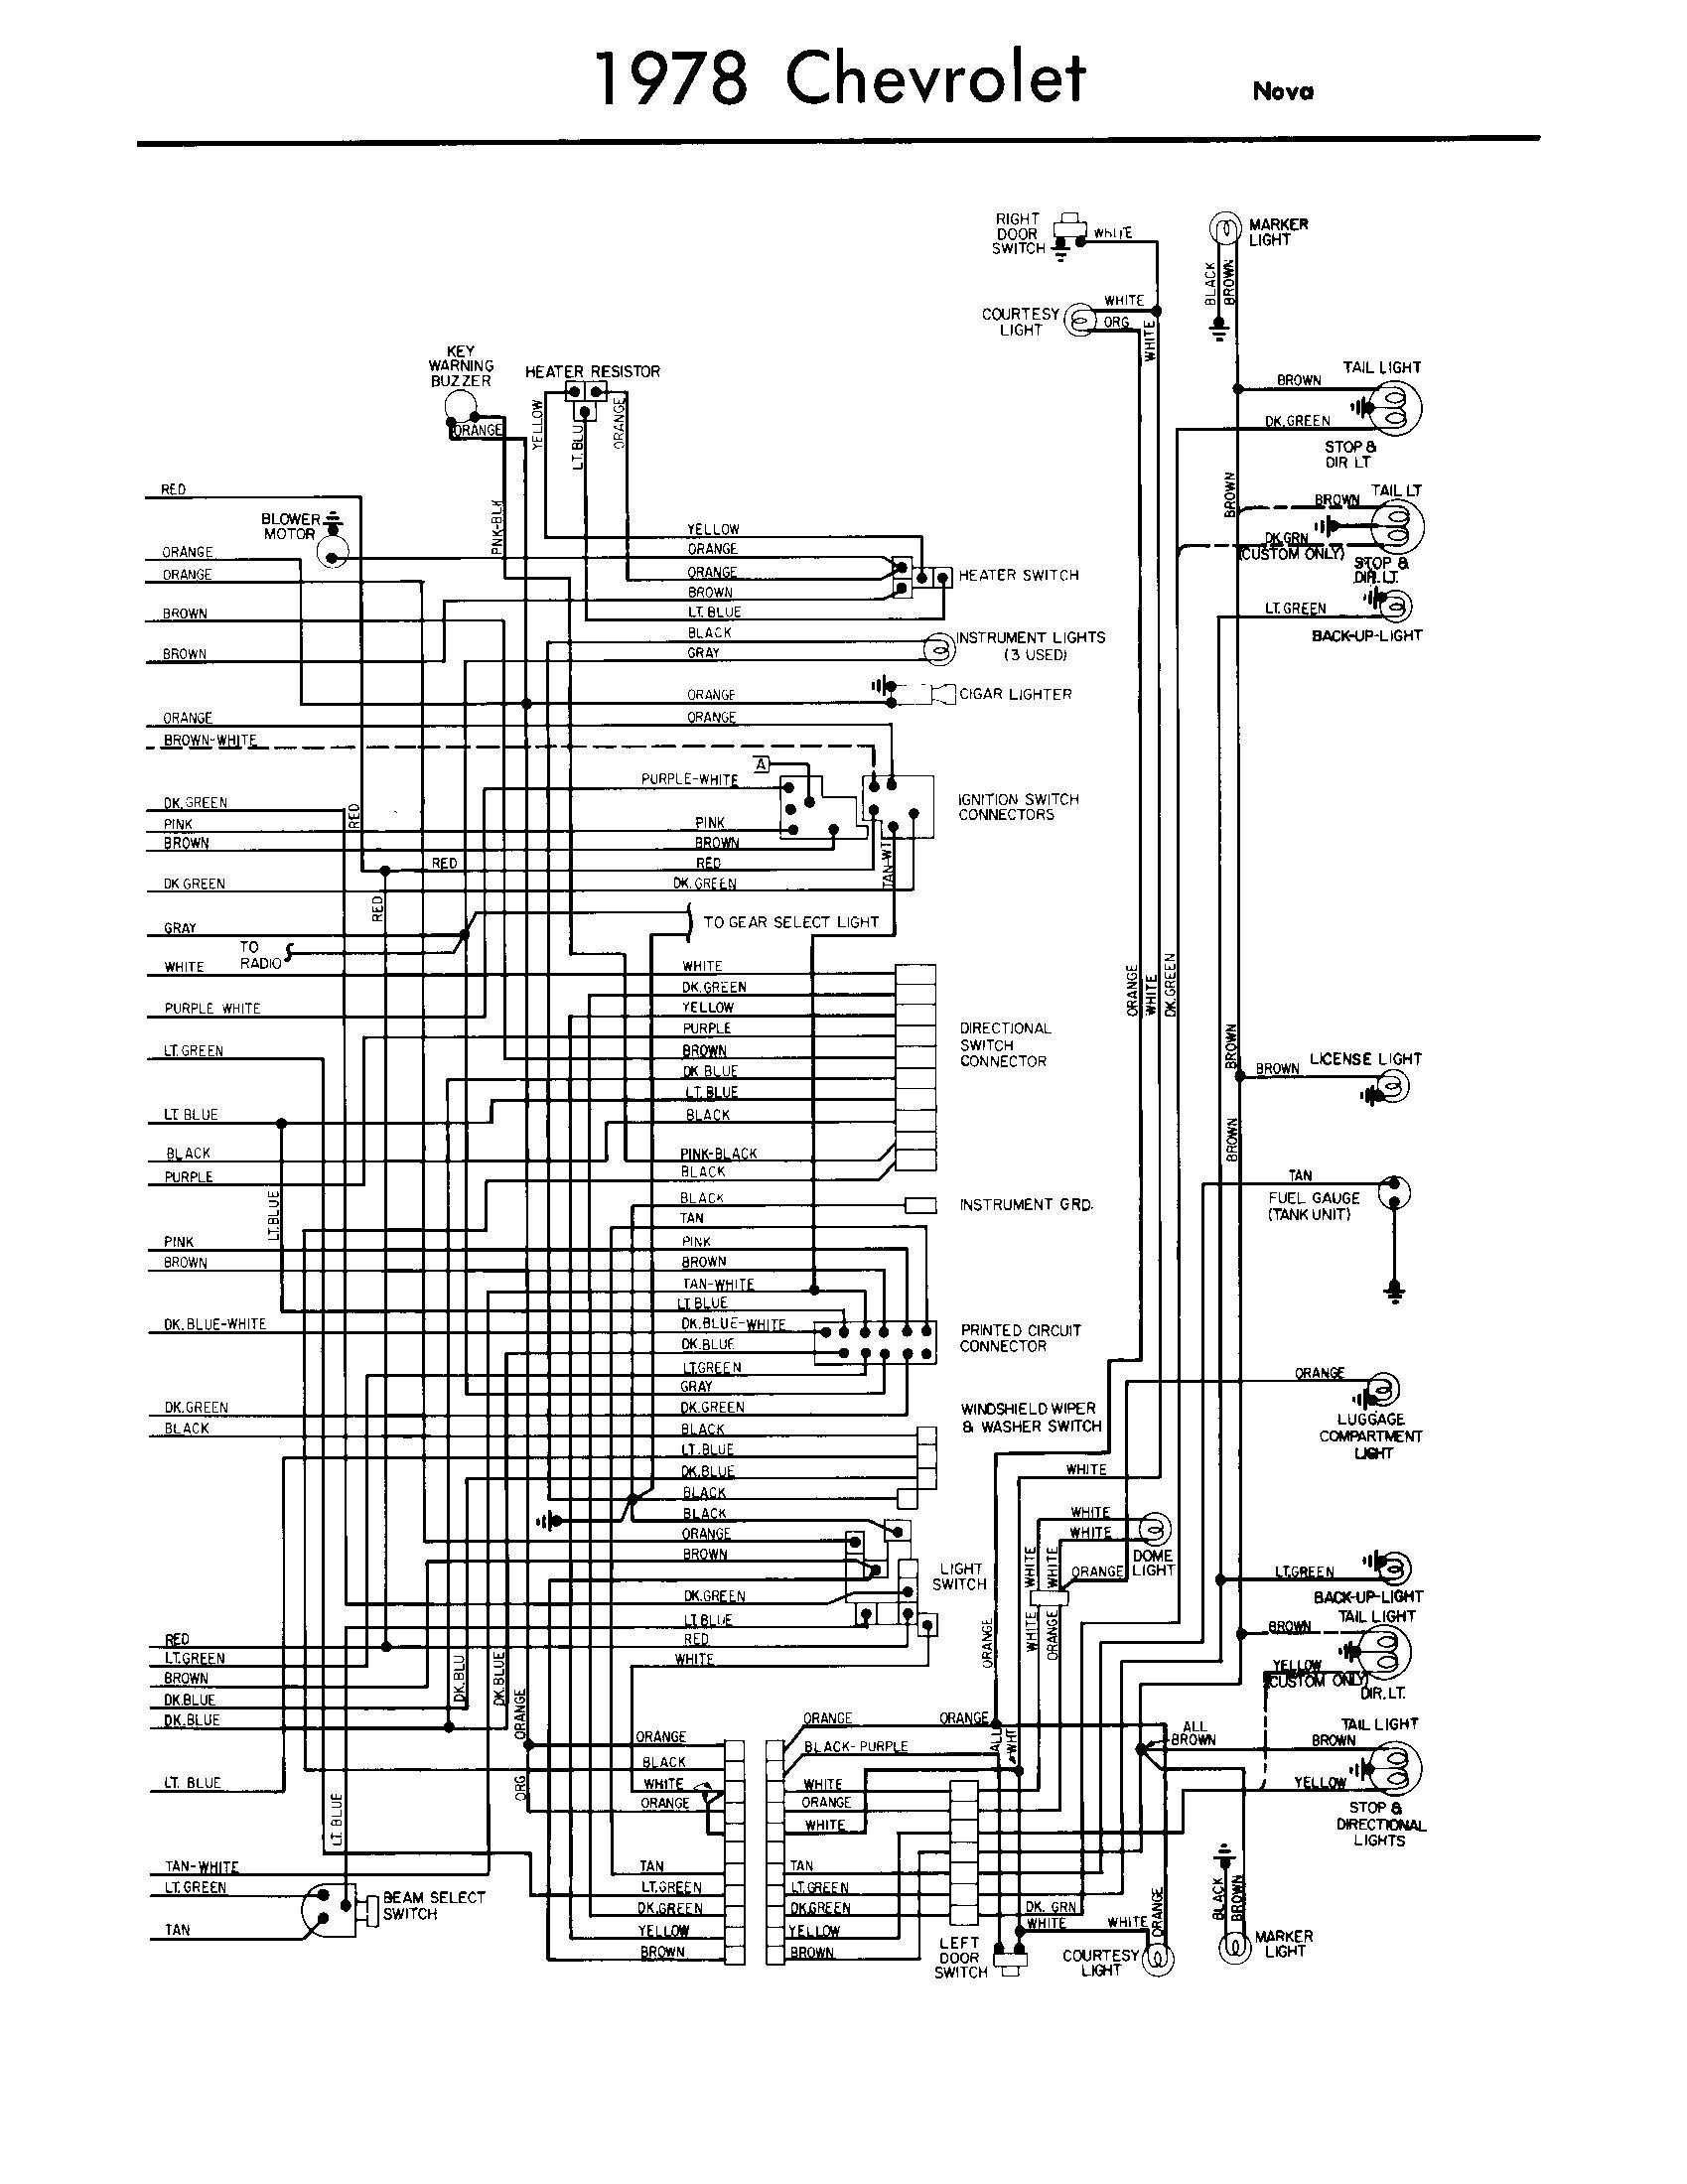 77 corvette frame diagram free download wiring diagram schematic rh onzegroup co 1977 corvette starter wiring diagram 1977 corvette radio wiring diagram